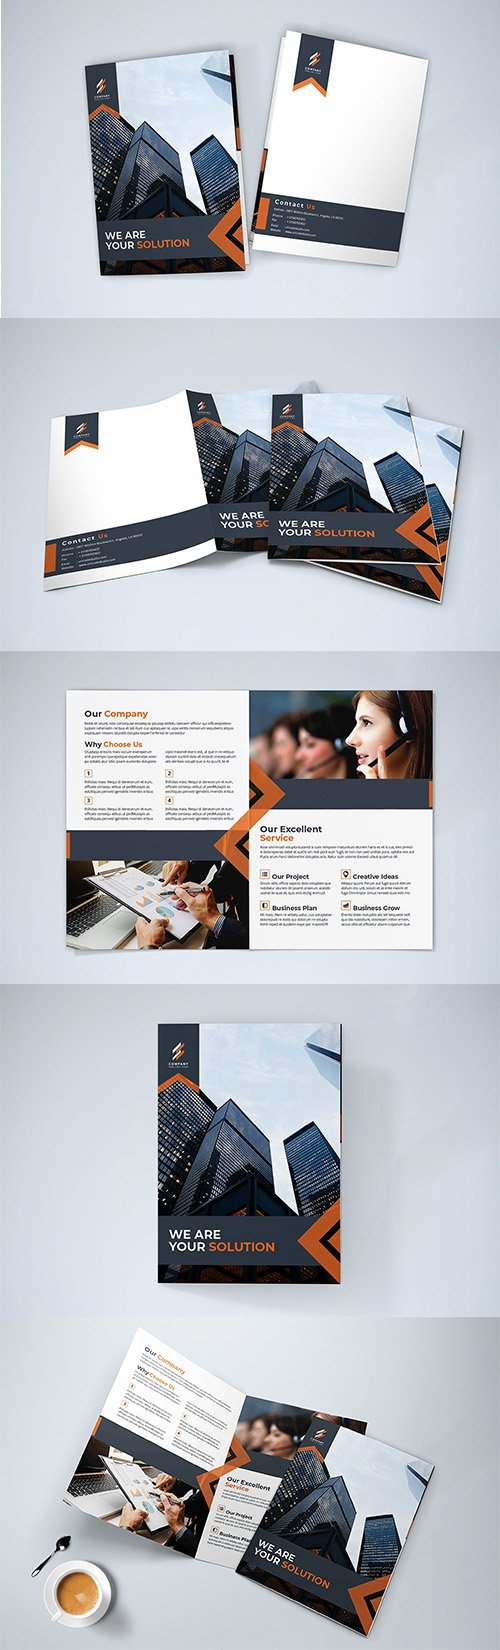 Bifold Indesign Brochure